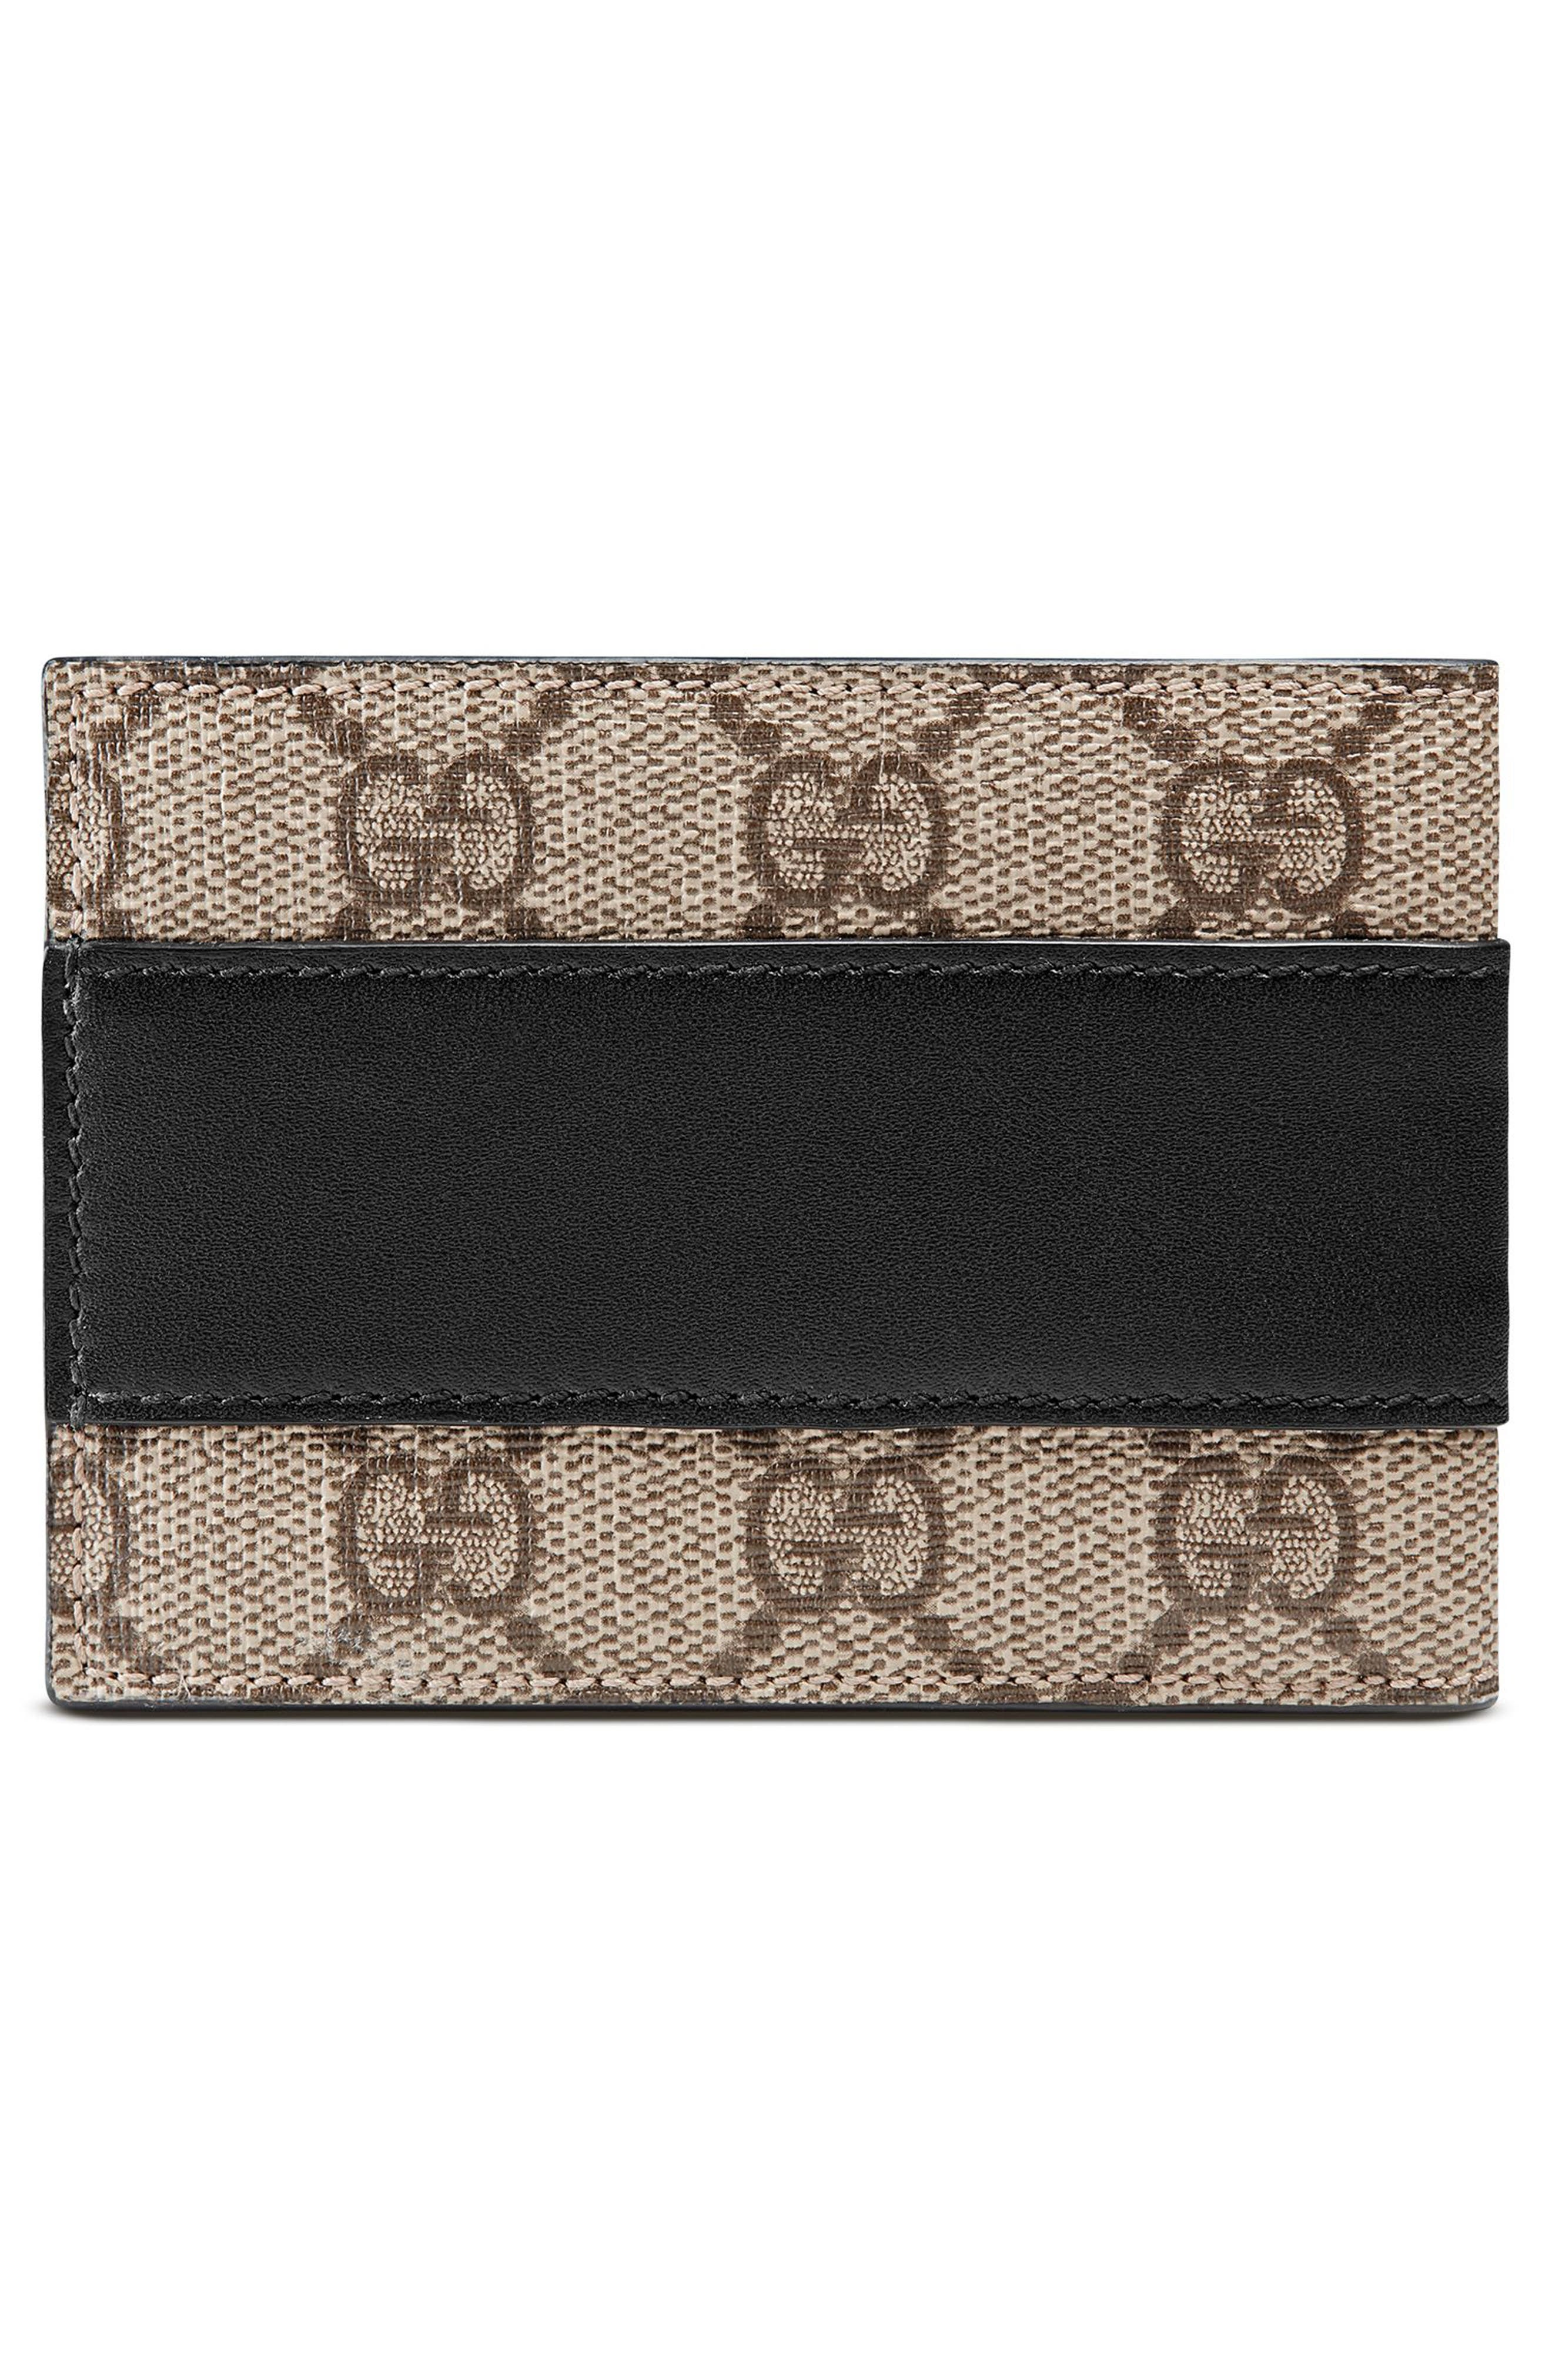 GG Supreme Canvas Wallet,                             Alternate thumbnail 3, color,